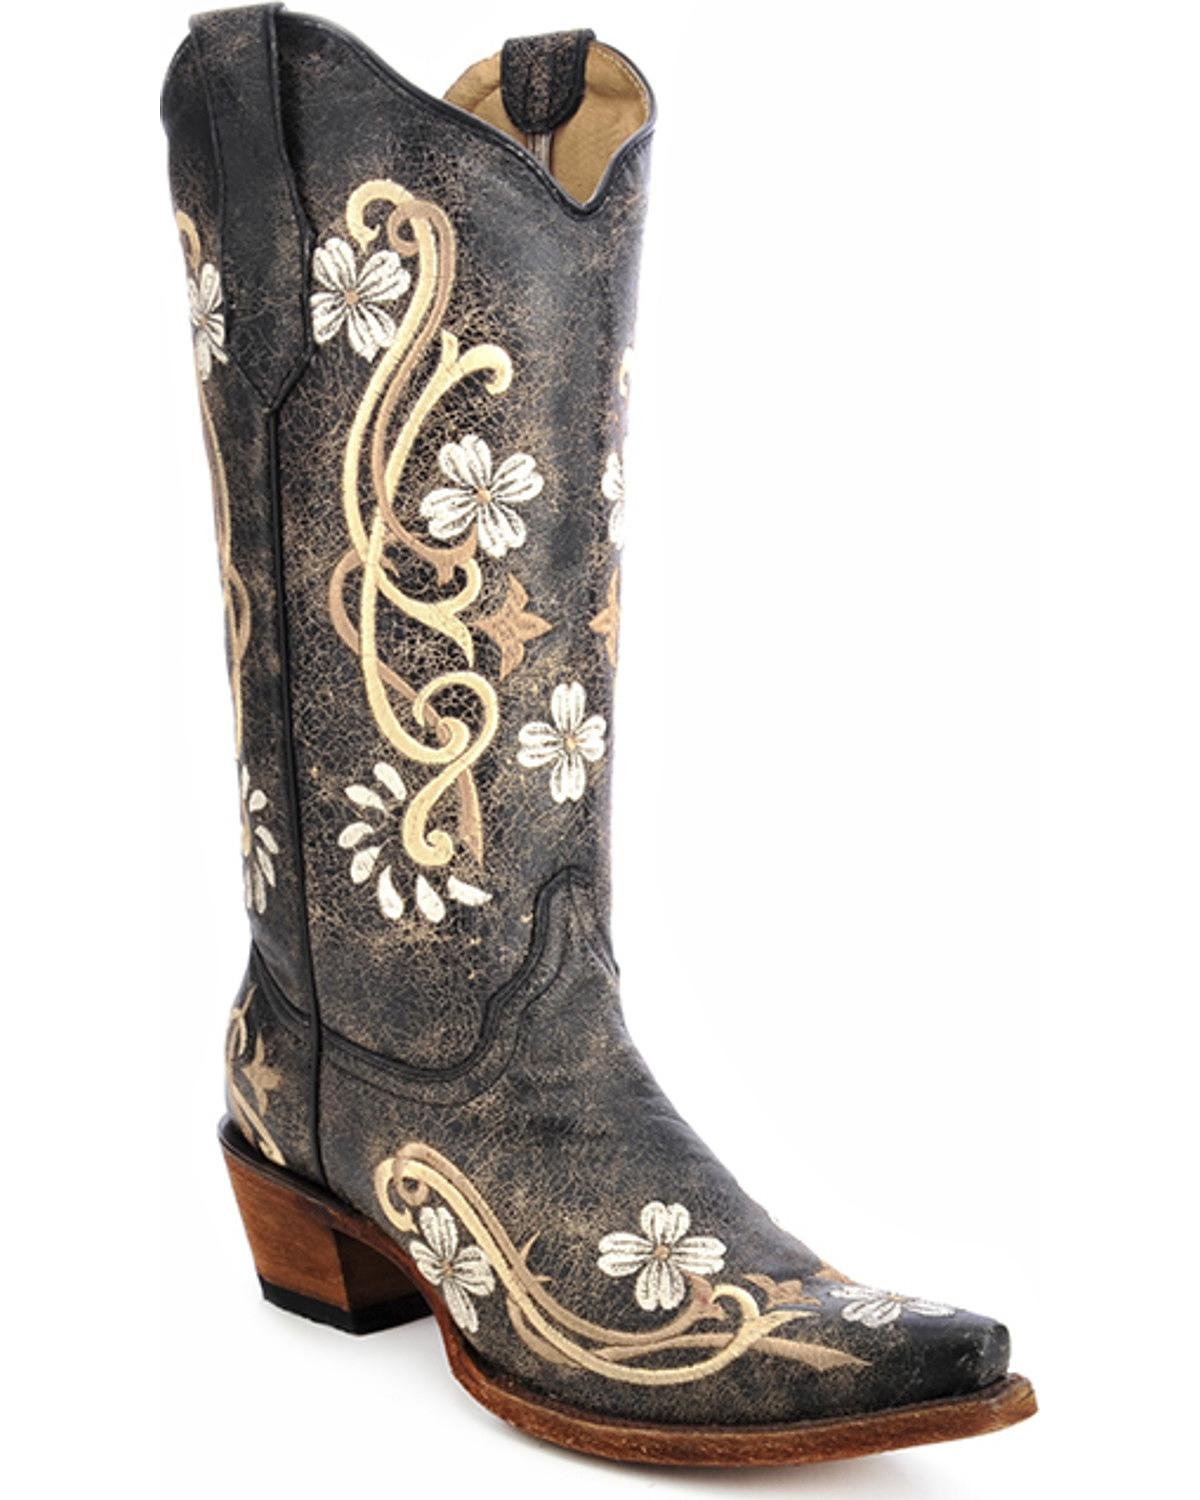 Circle G Women's Floral Embroidered Cowgirl Boot Snip Toe Black 8 M US